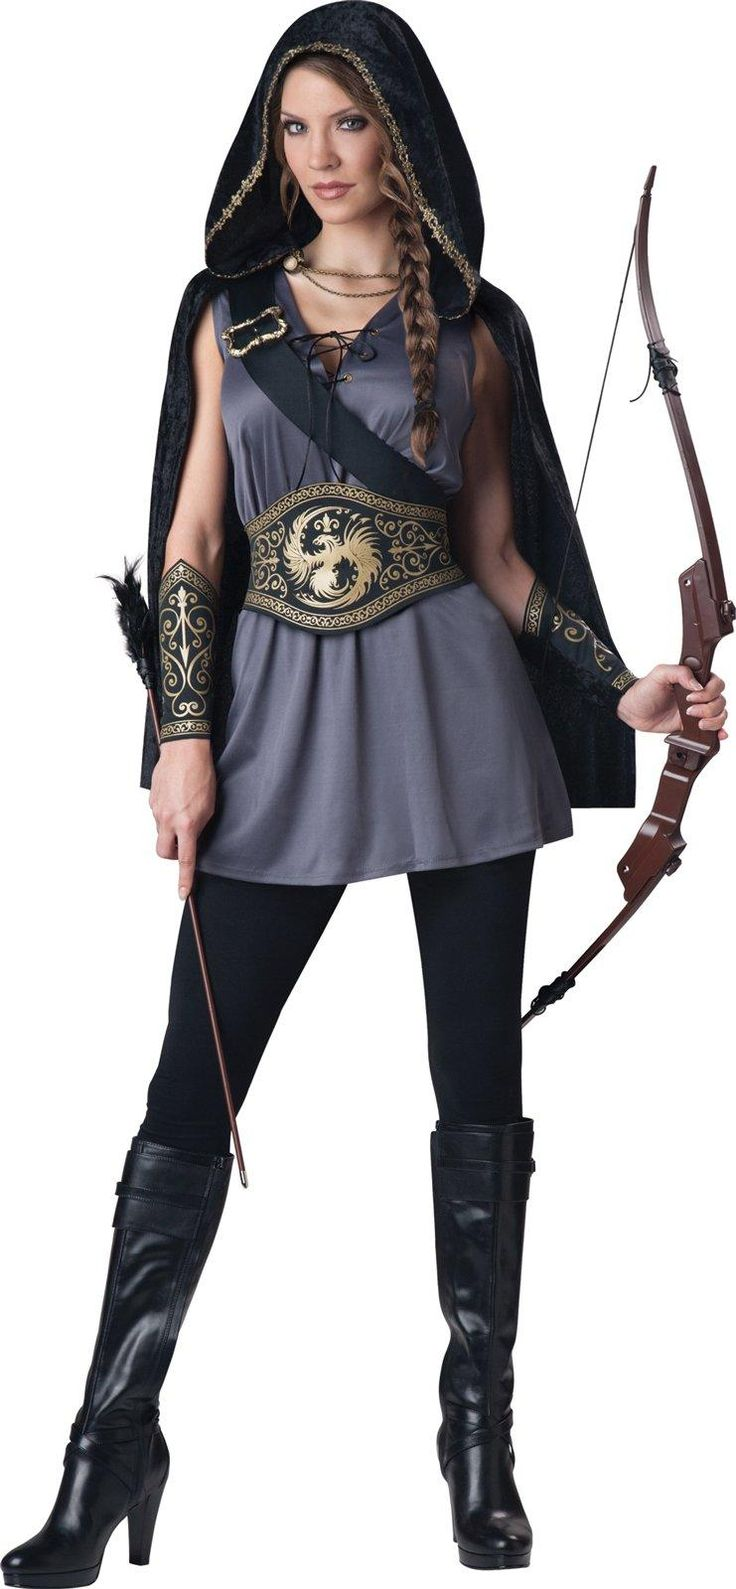 Huntress Adult Costume from Buycostumes.com